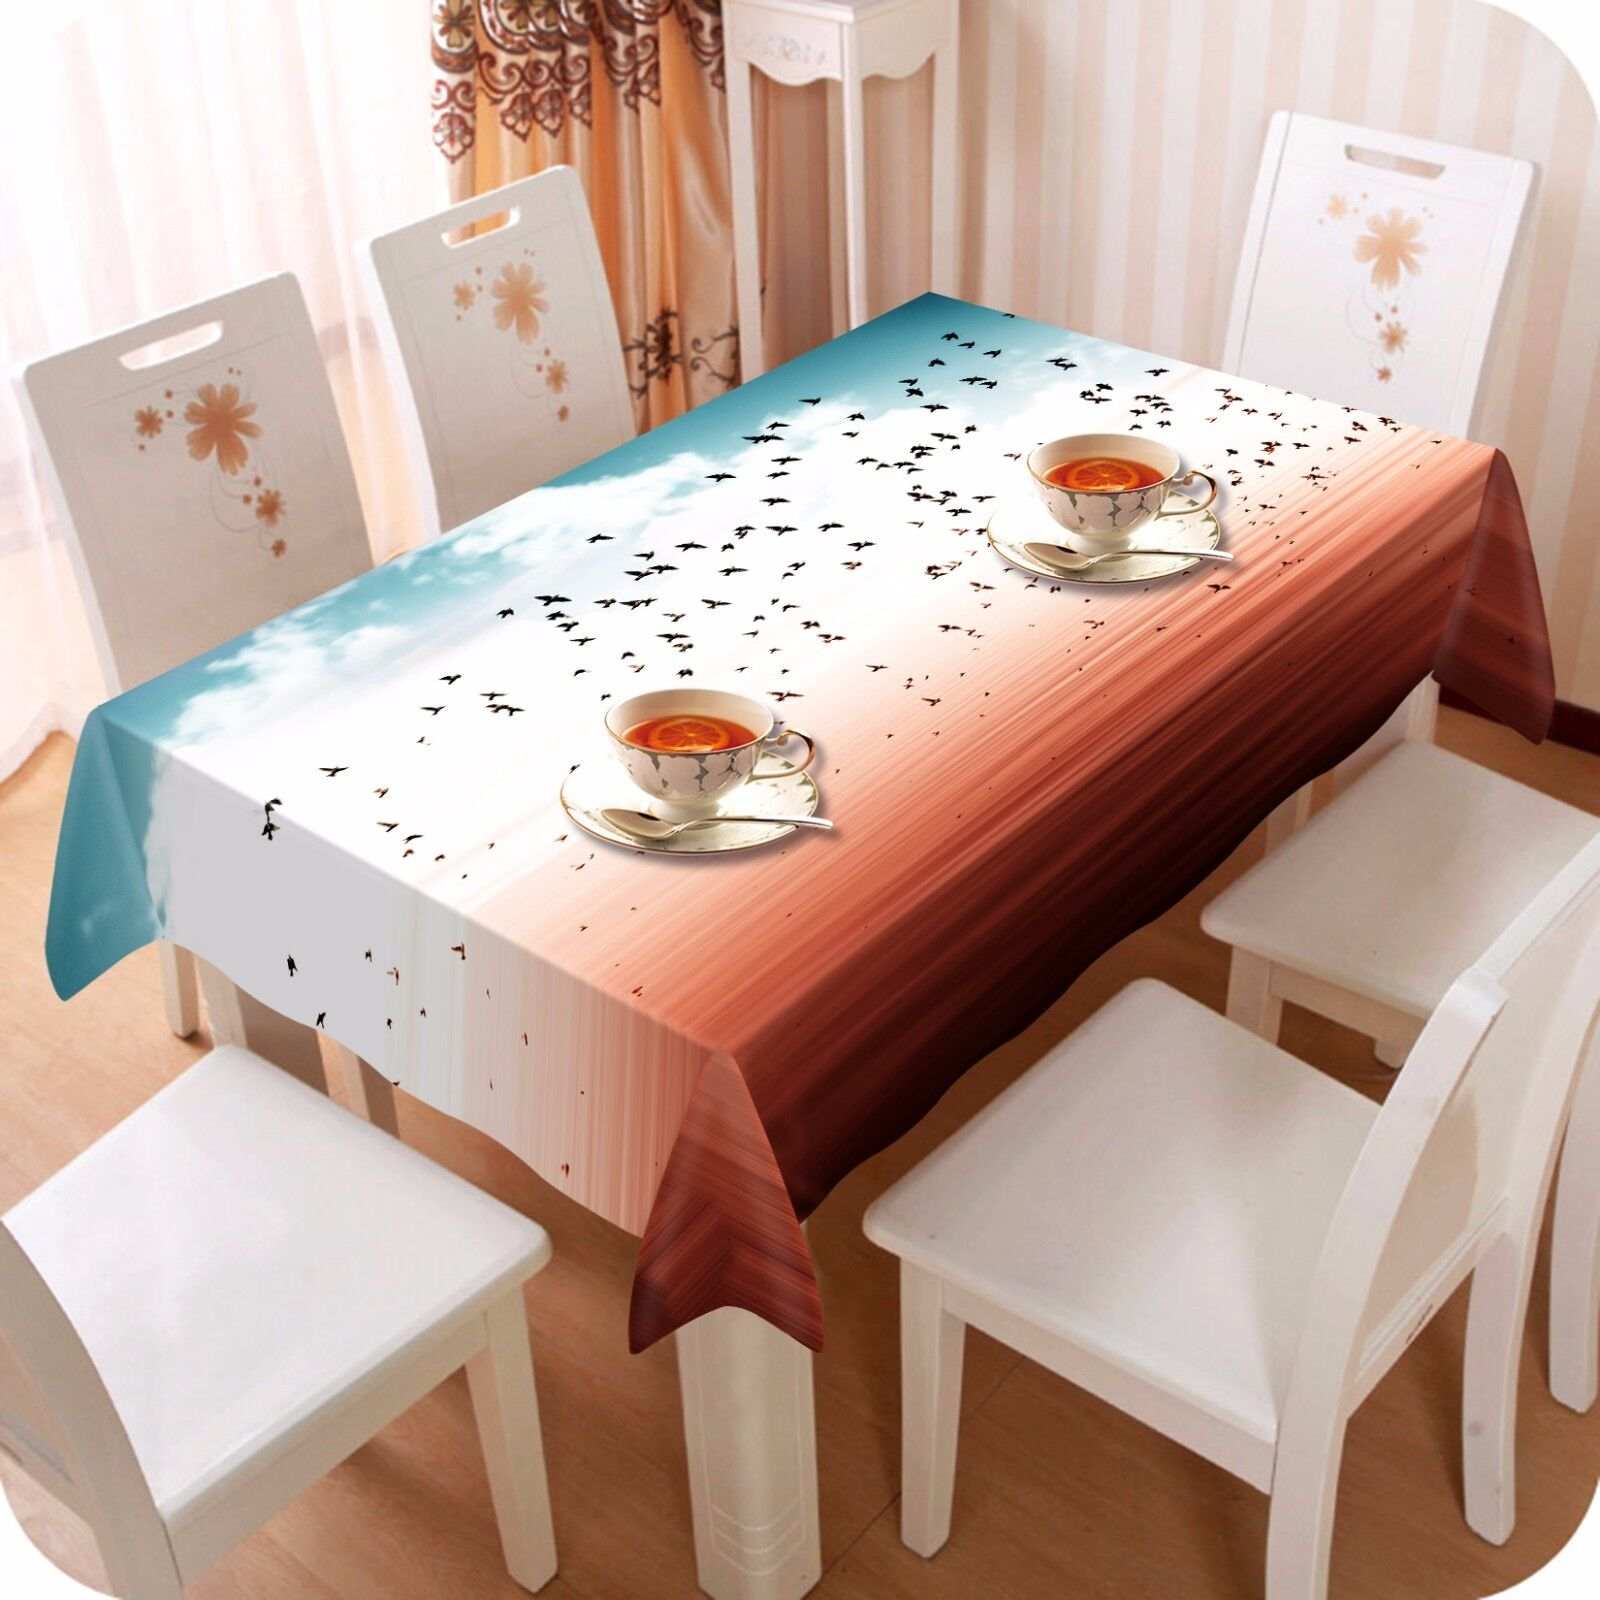 3D Birds Fly Nappe Table Cover Cloth fête d'anniversaire AJ papier peint Royaume-Uni Citron